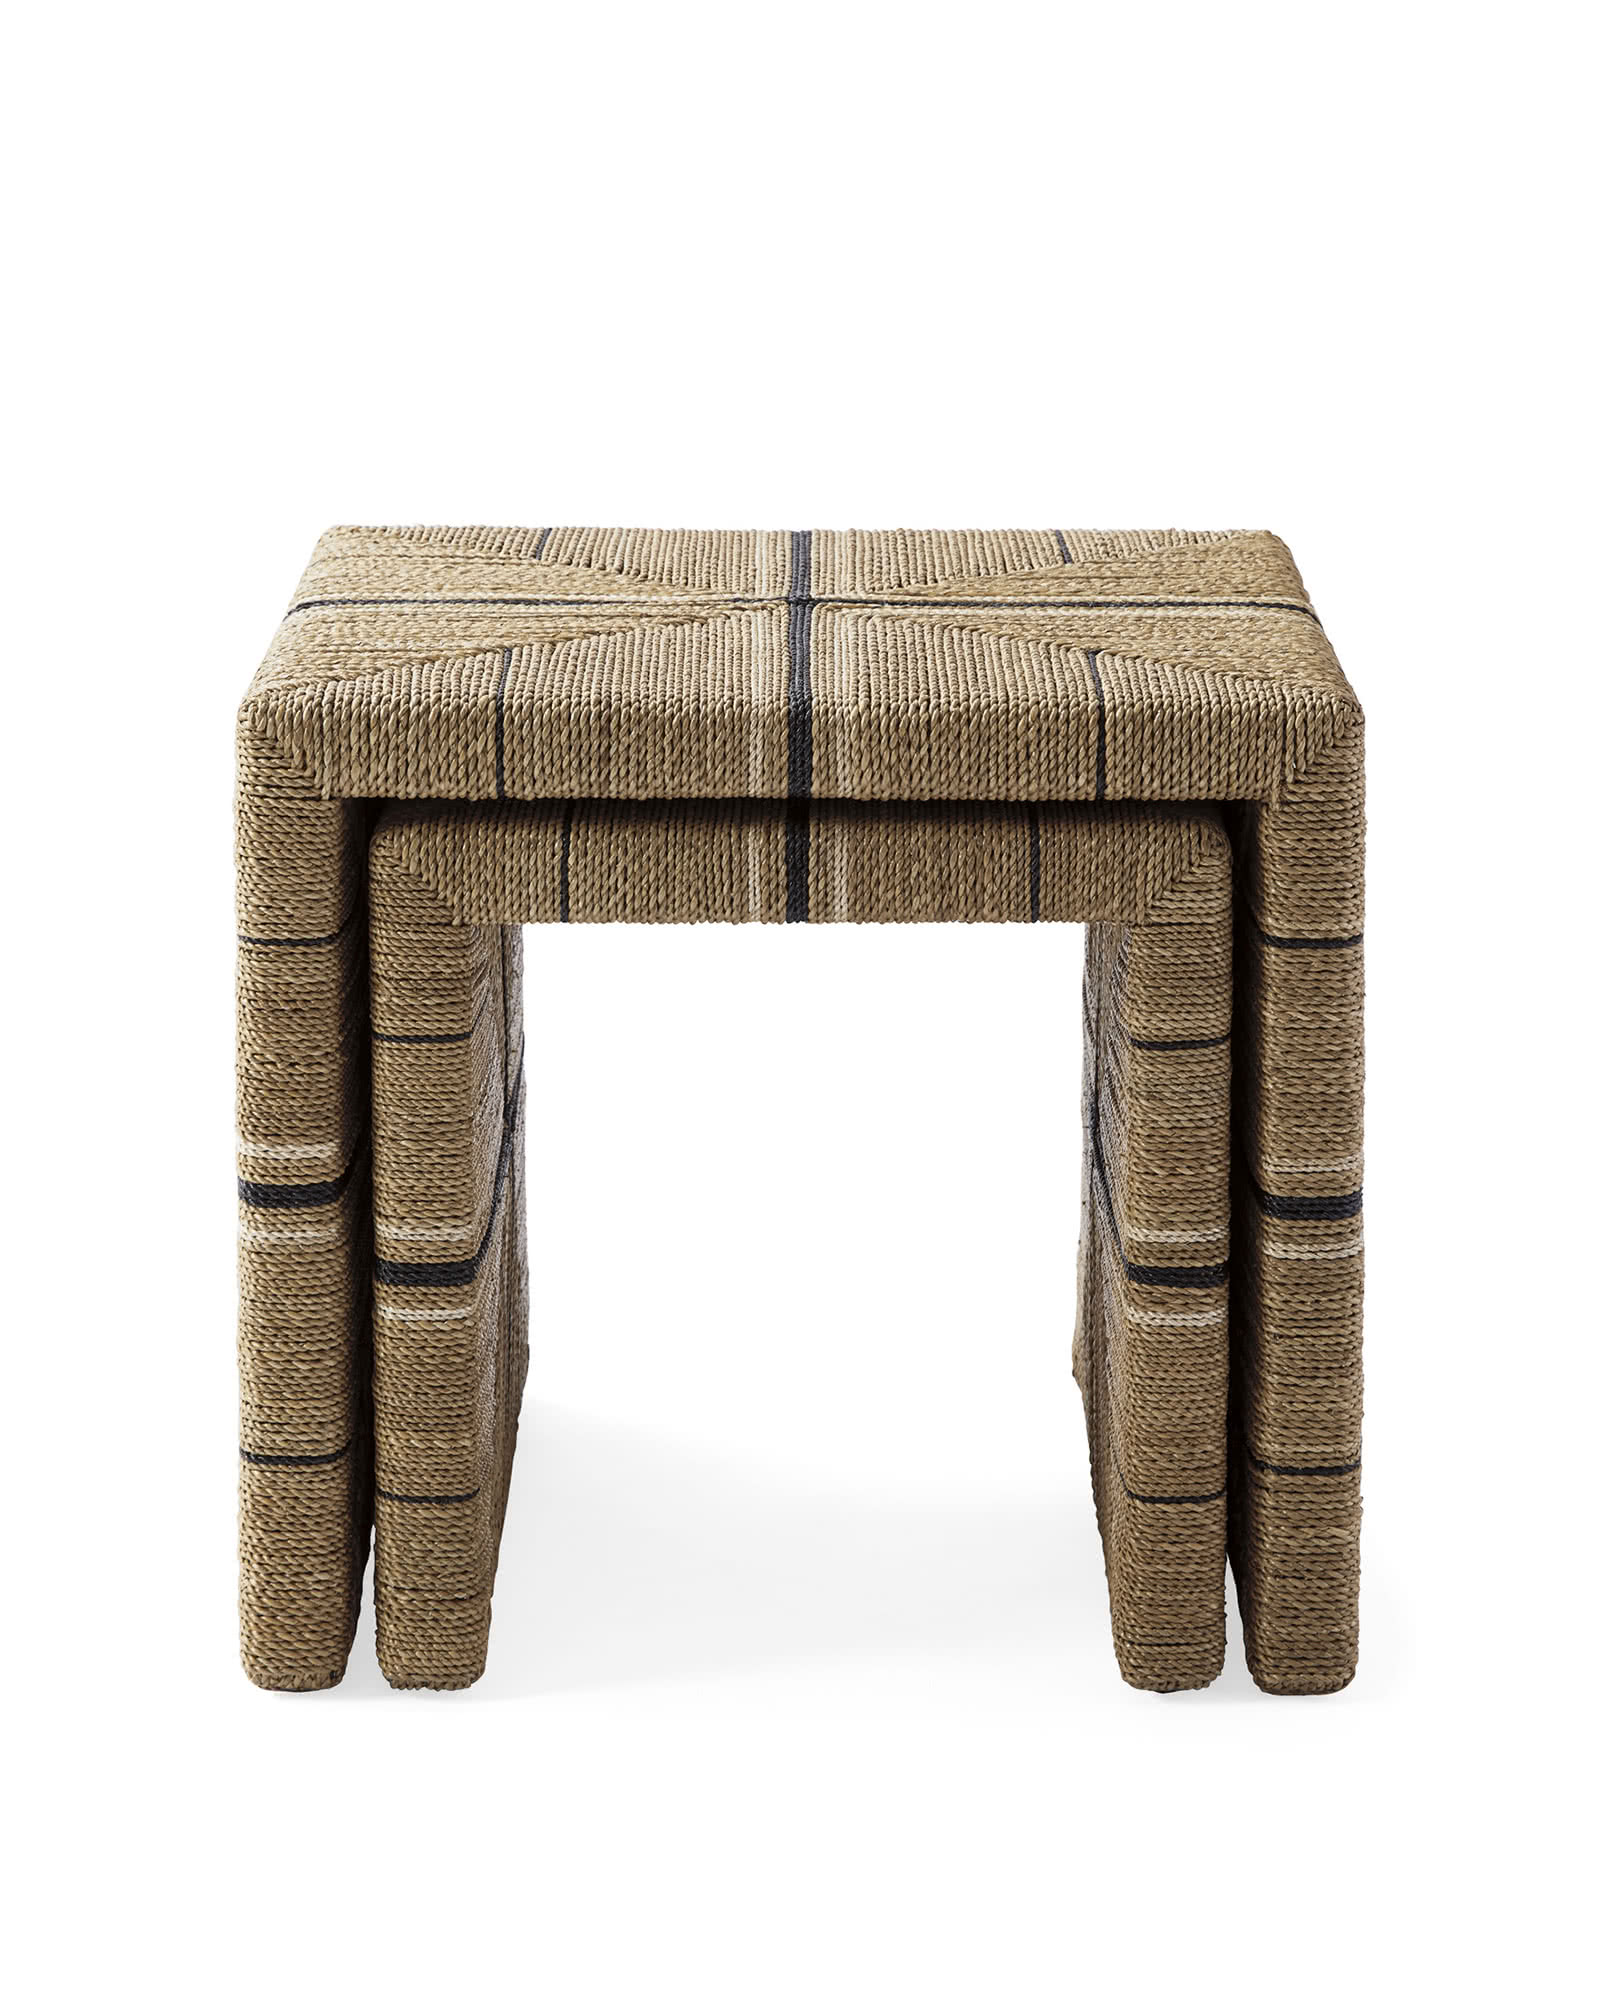 Carson Nesting Tables